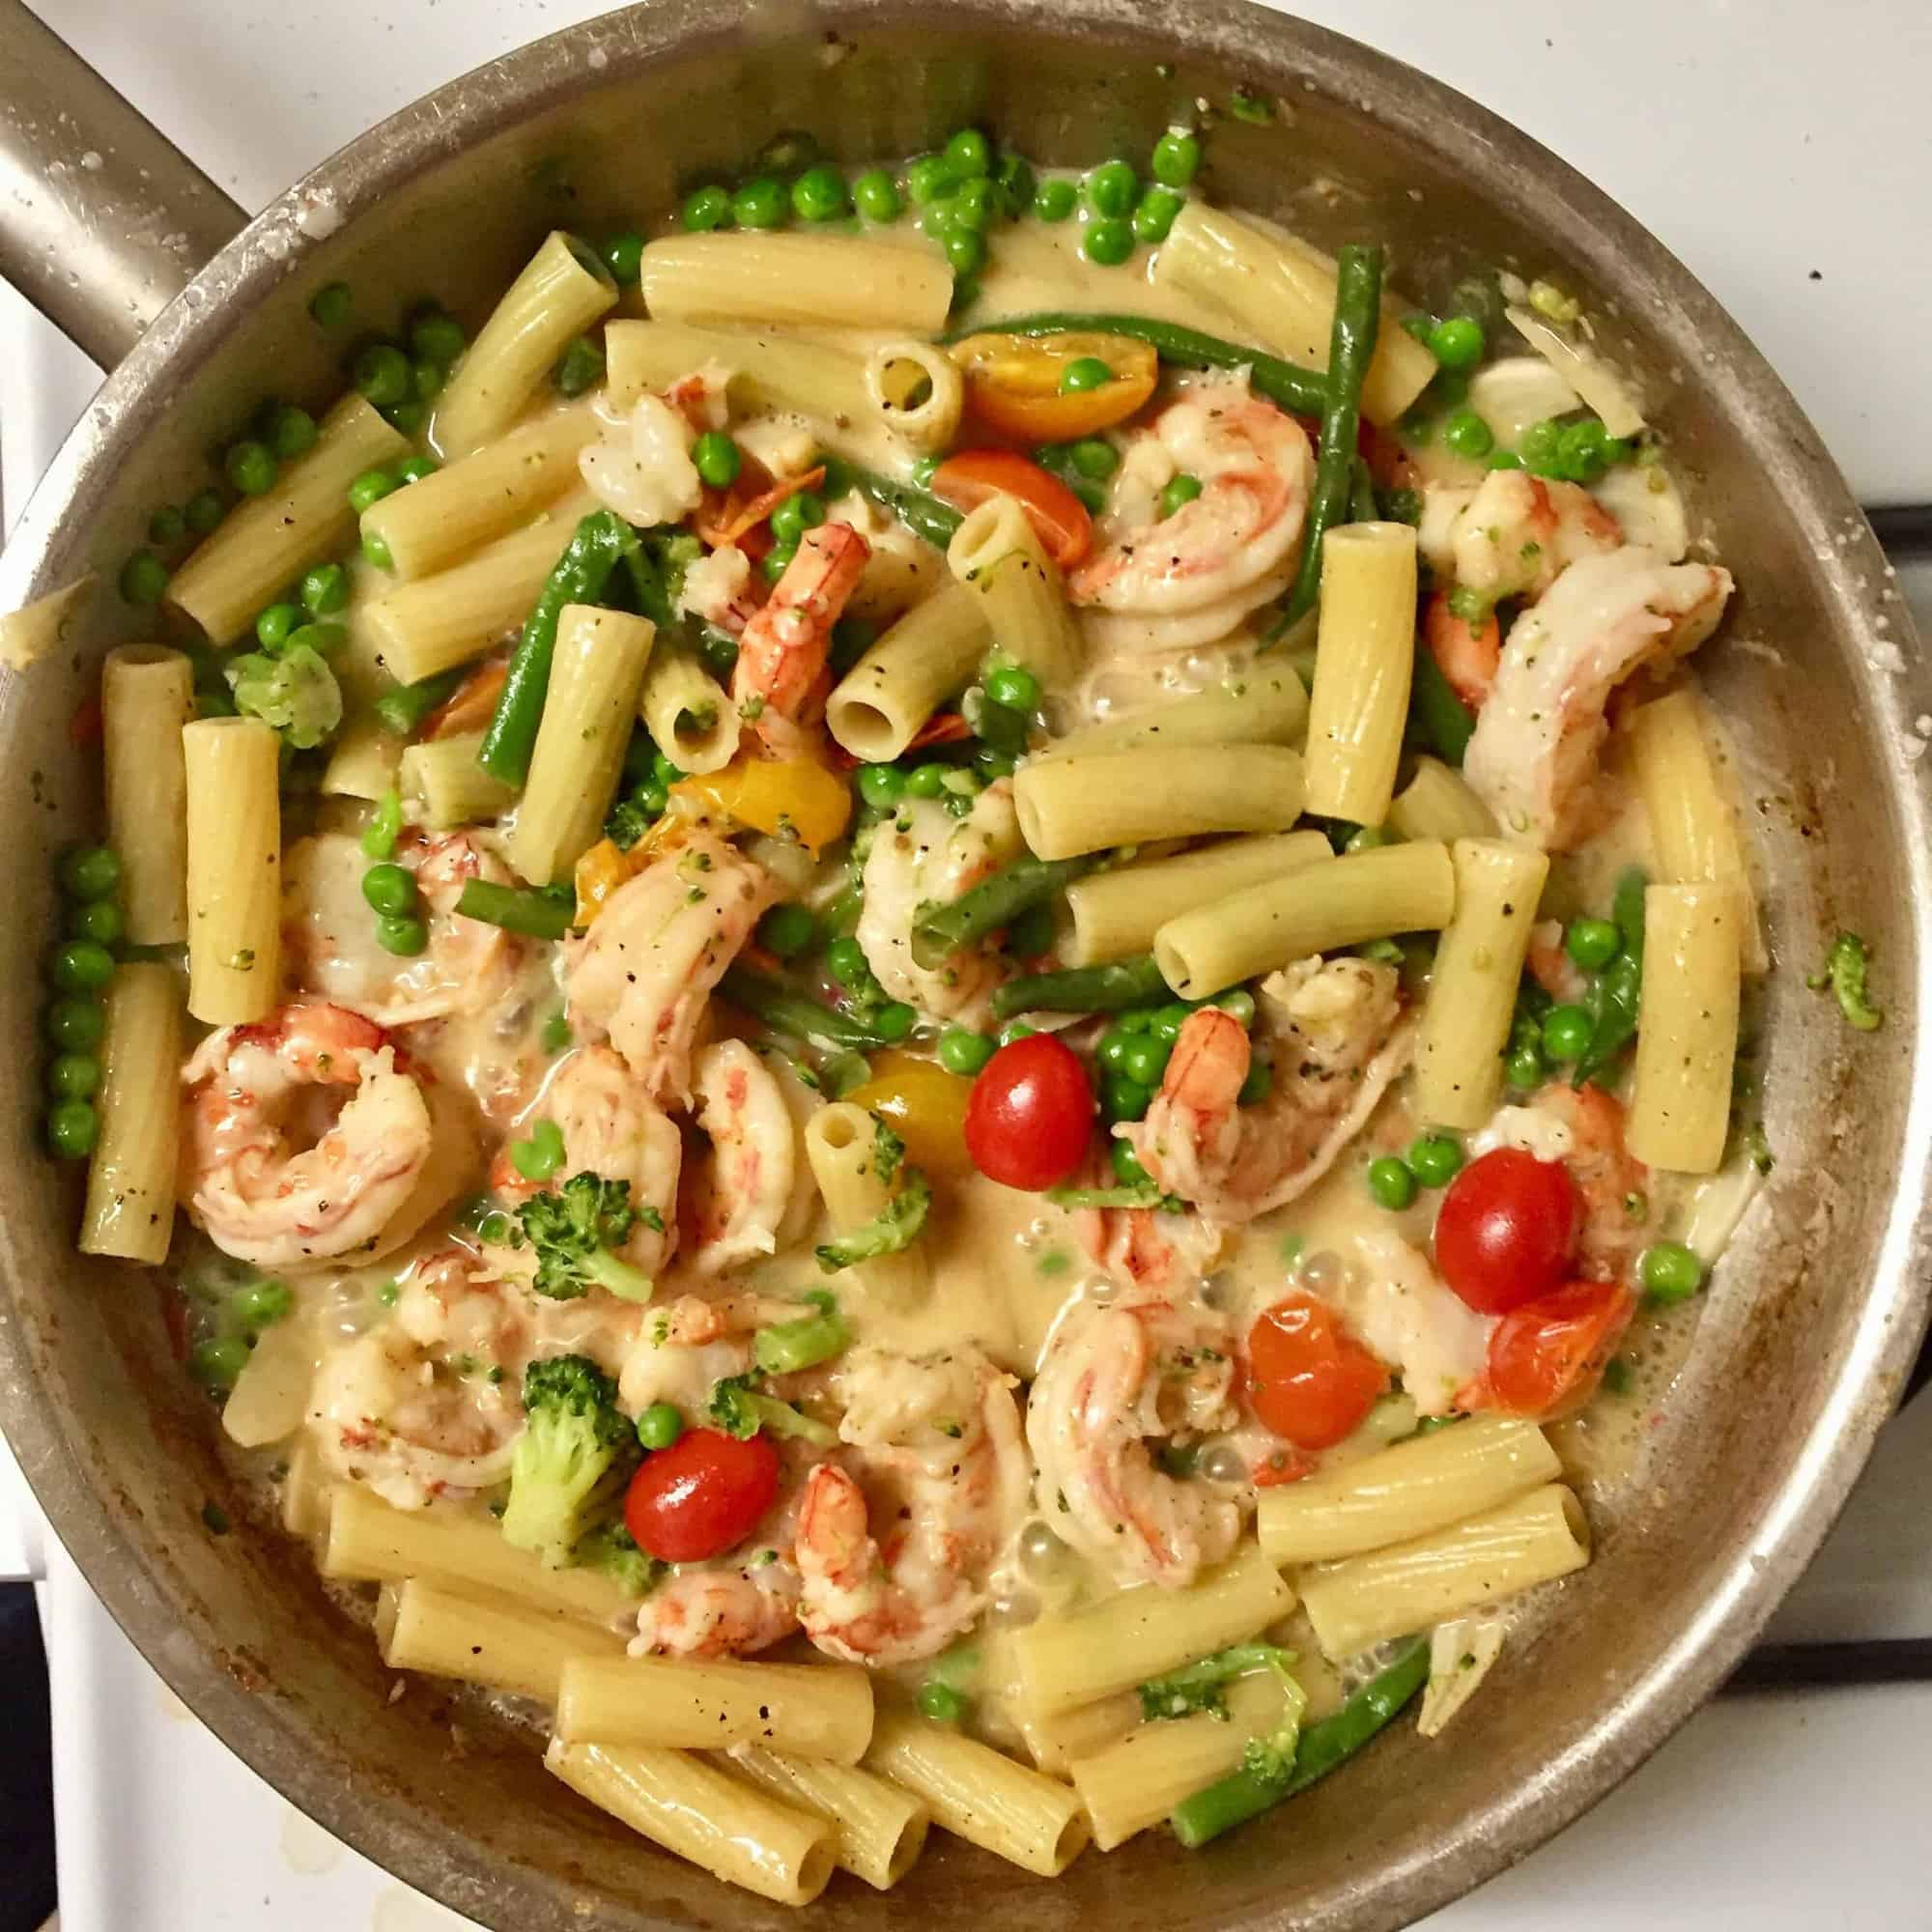 After the longest deep freeze in memory…a breath of Spring: Pasta Primavera with Pink Shrimp